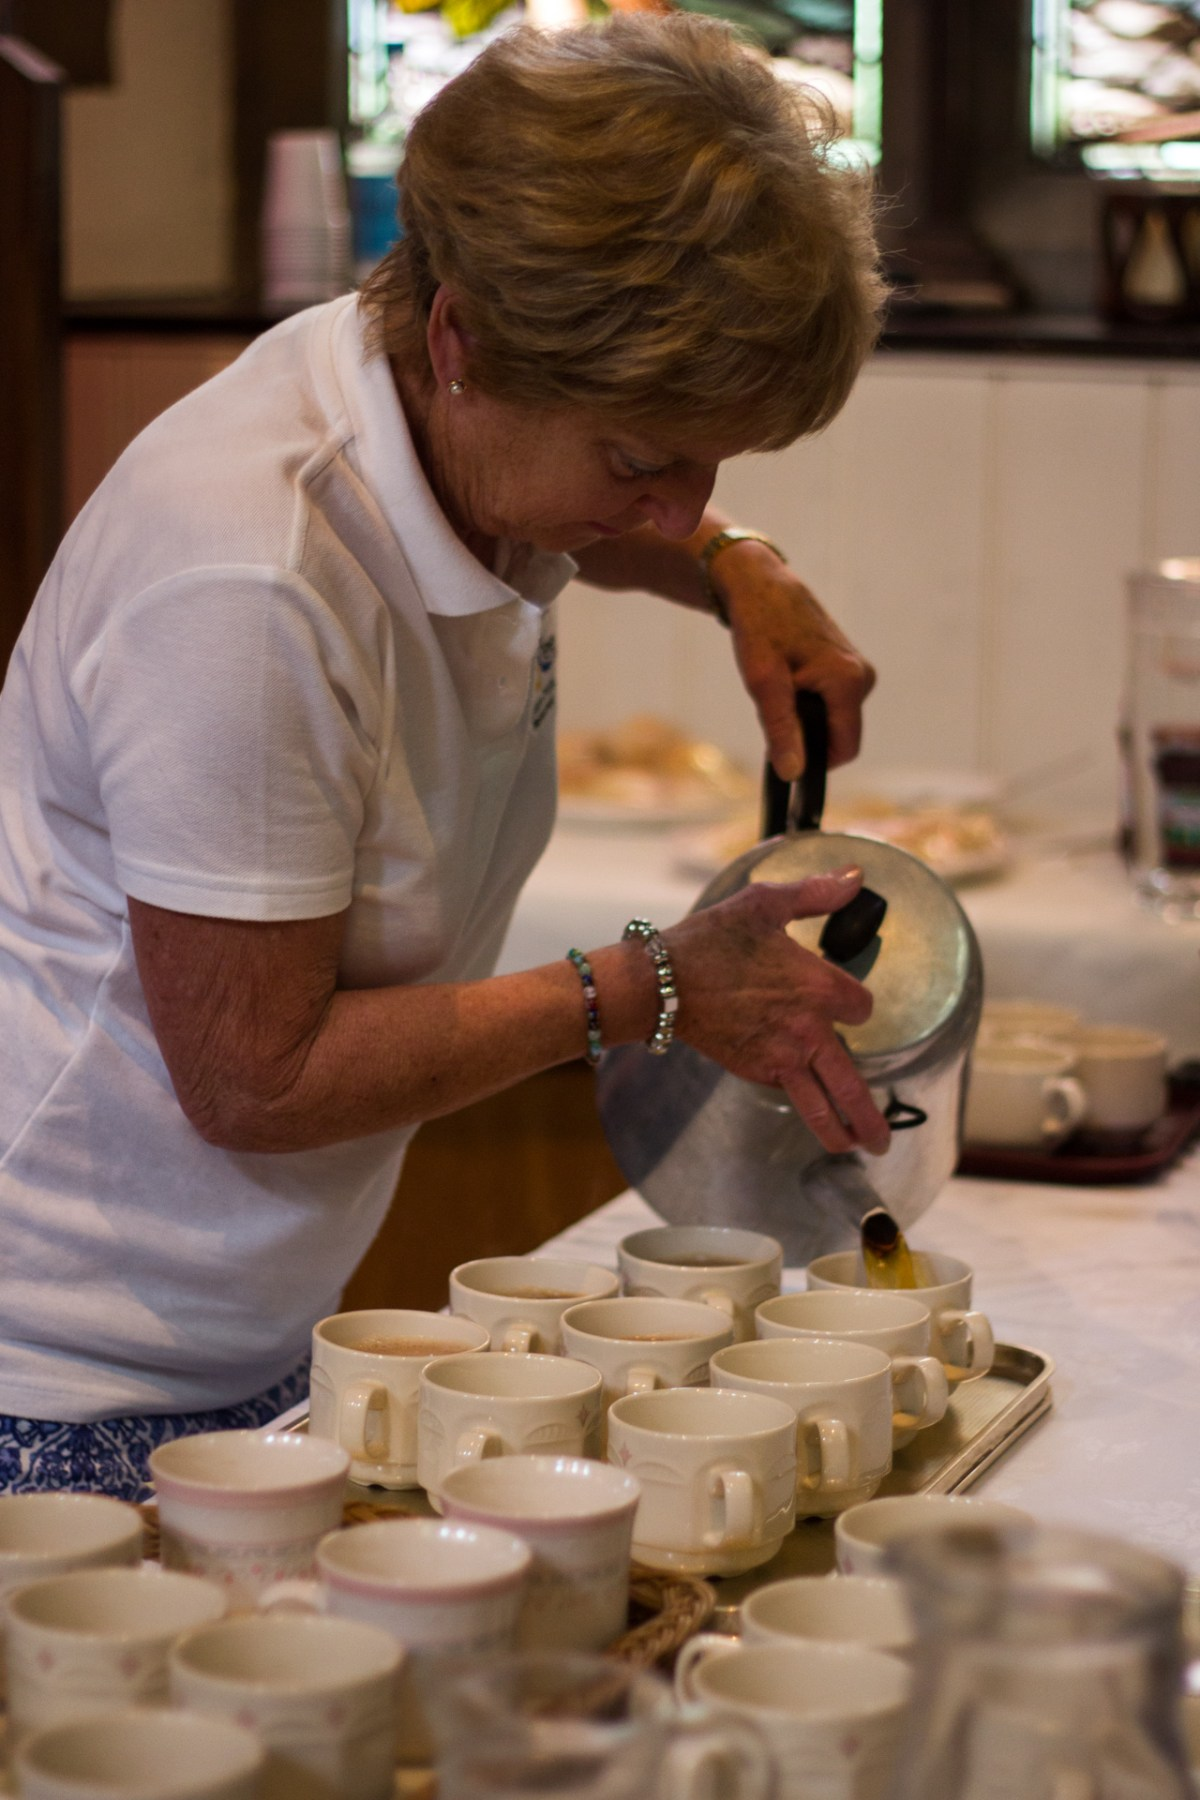 Doing a sterling job, Sally Somerville poured tea for audience-members to enjoy.